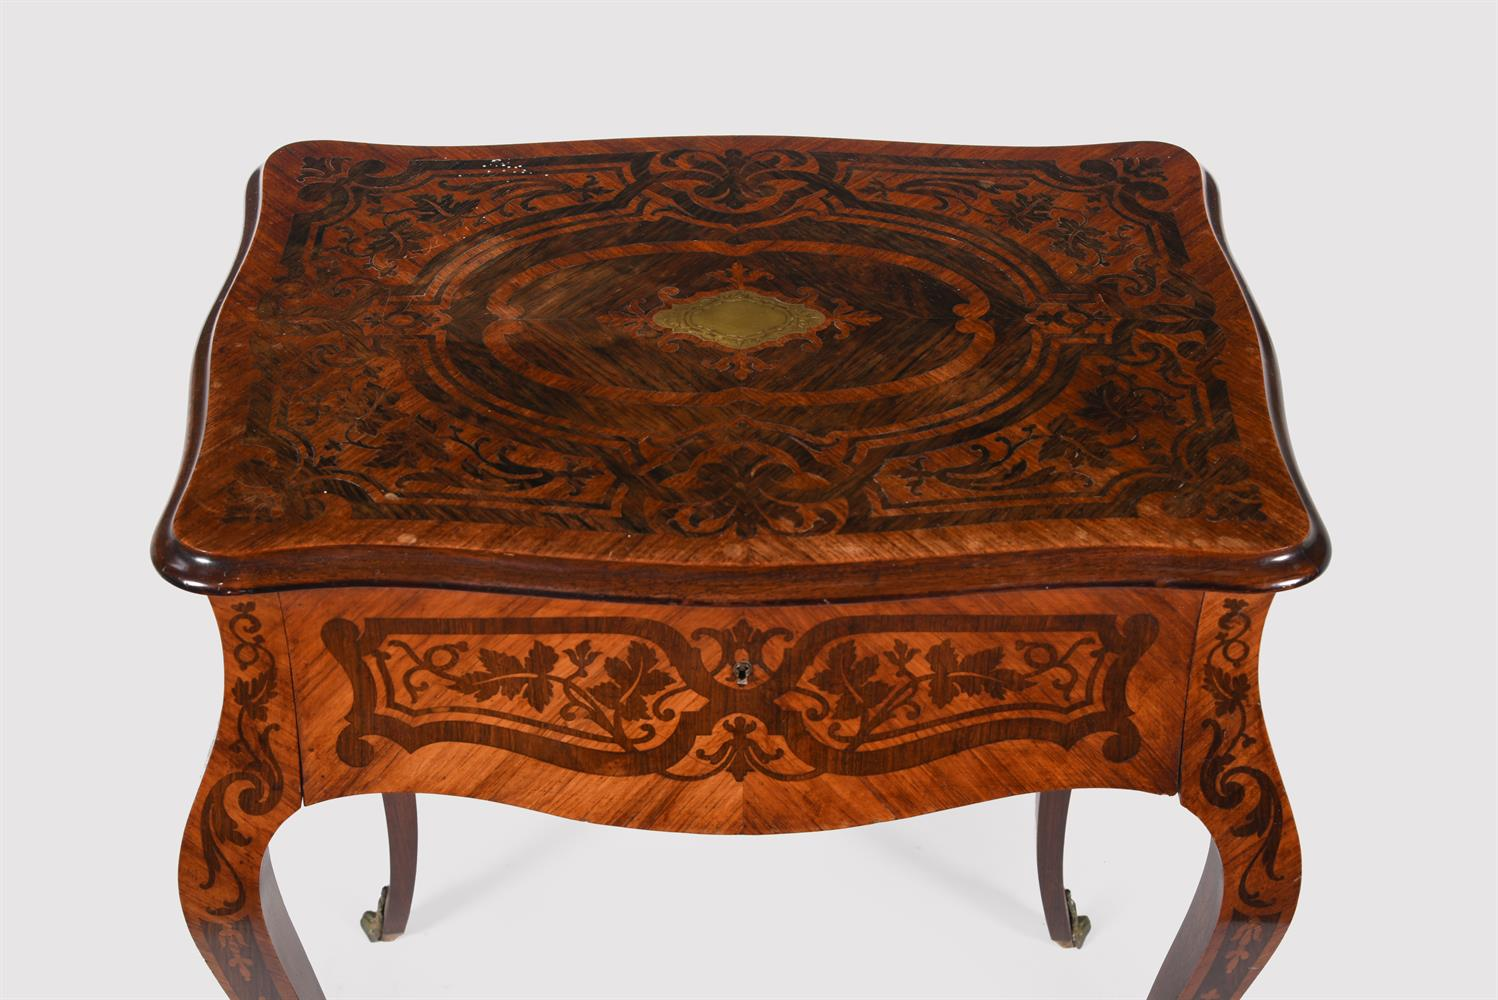 Y A French tulipwood and rosewood marquetry side table - Image 2 of 5